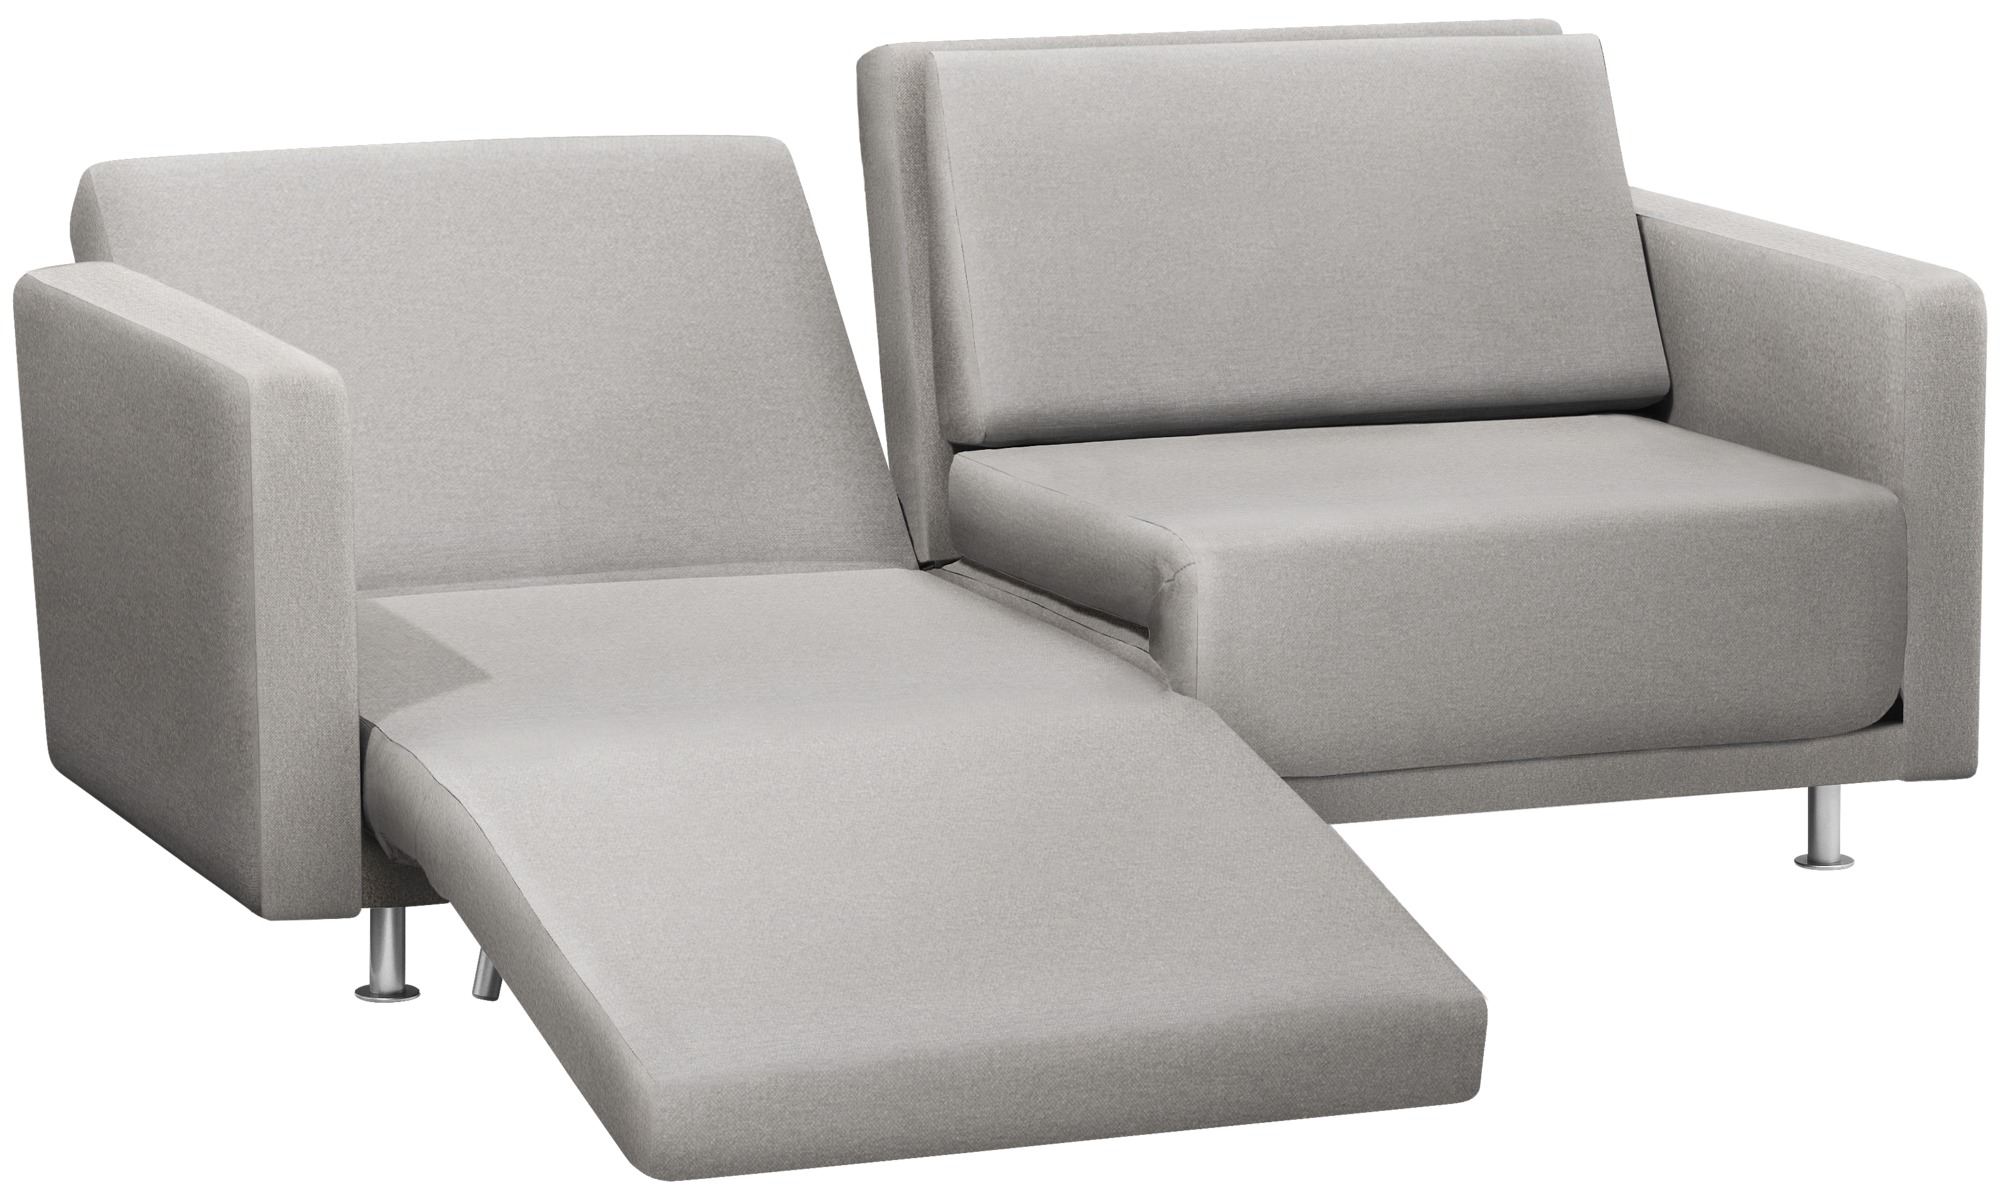 Sleep Chair Recliner Sofa Beds Melo 2 Sofa With Reclining And Sleeping